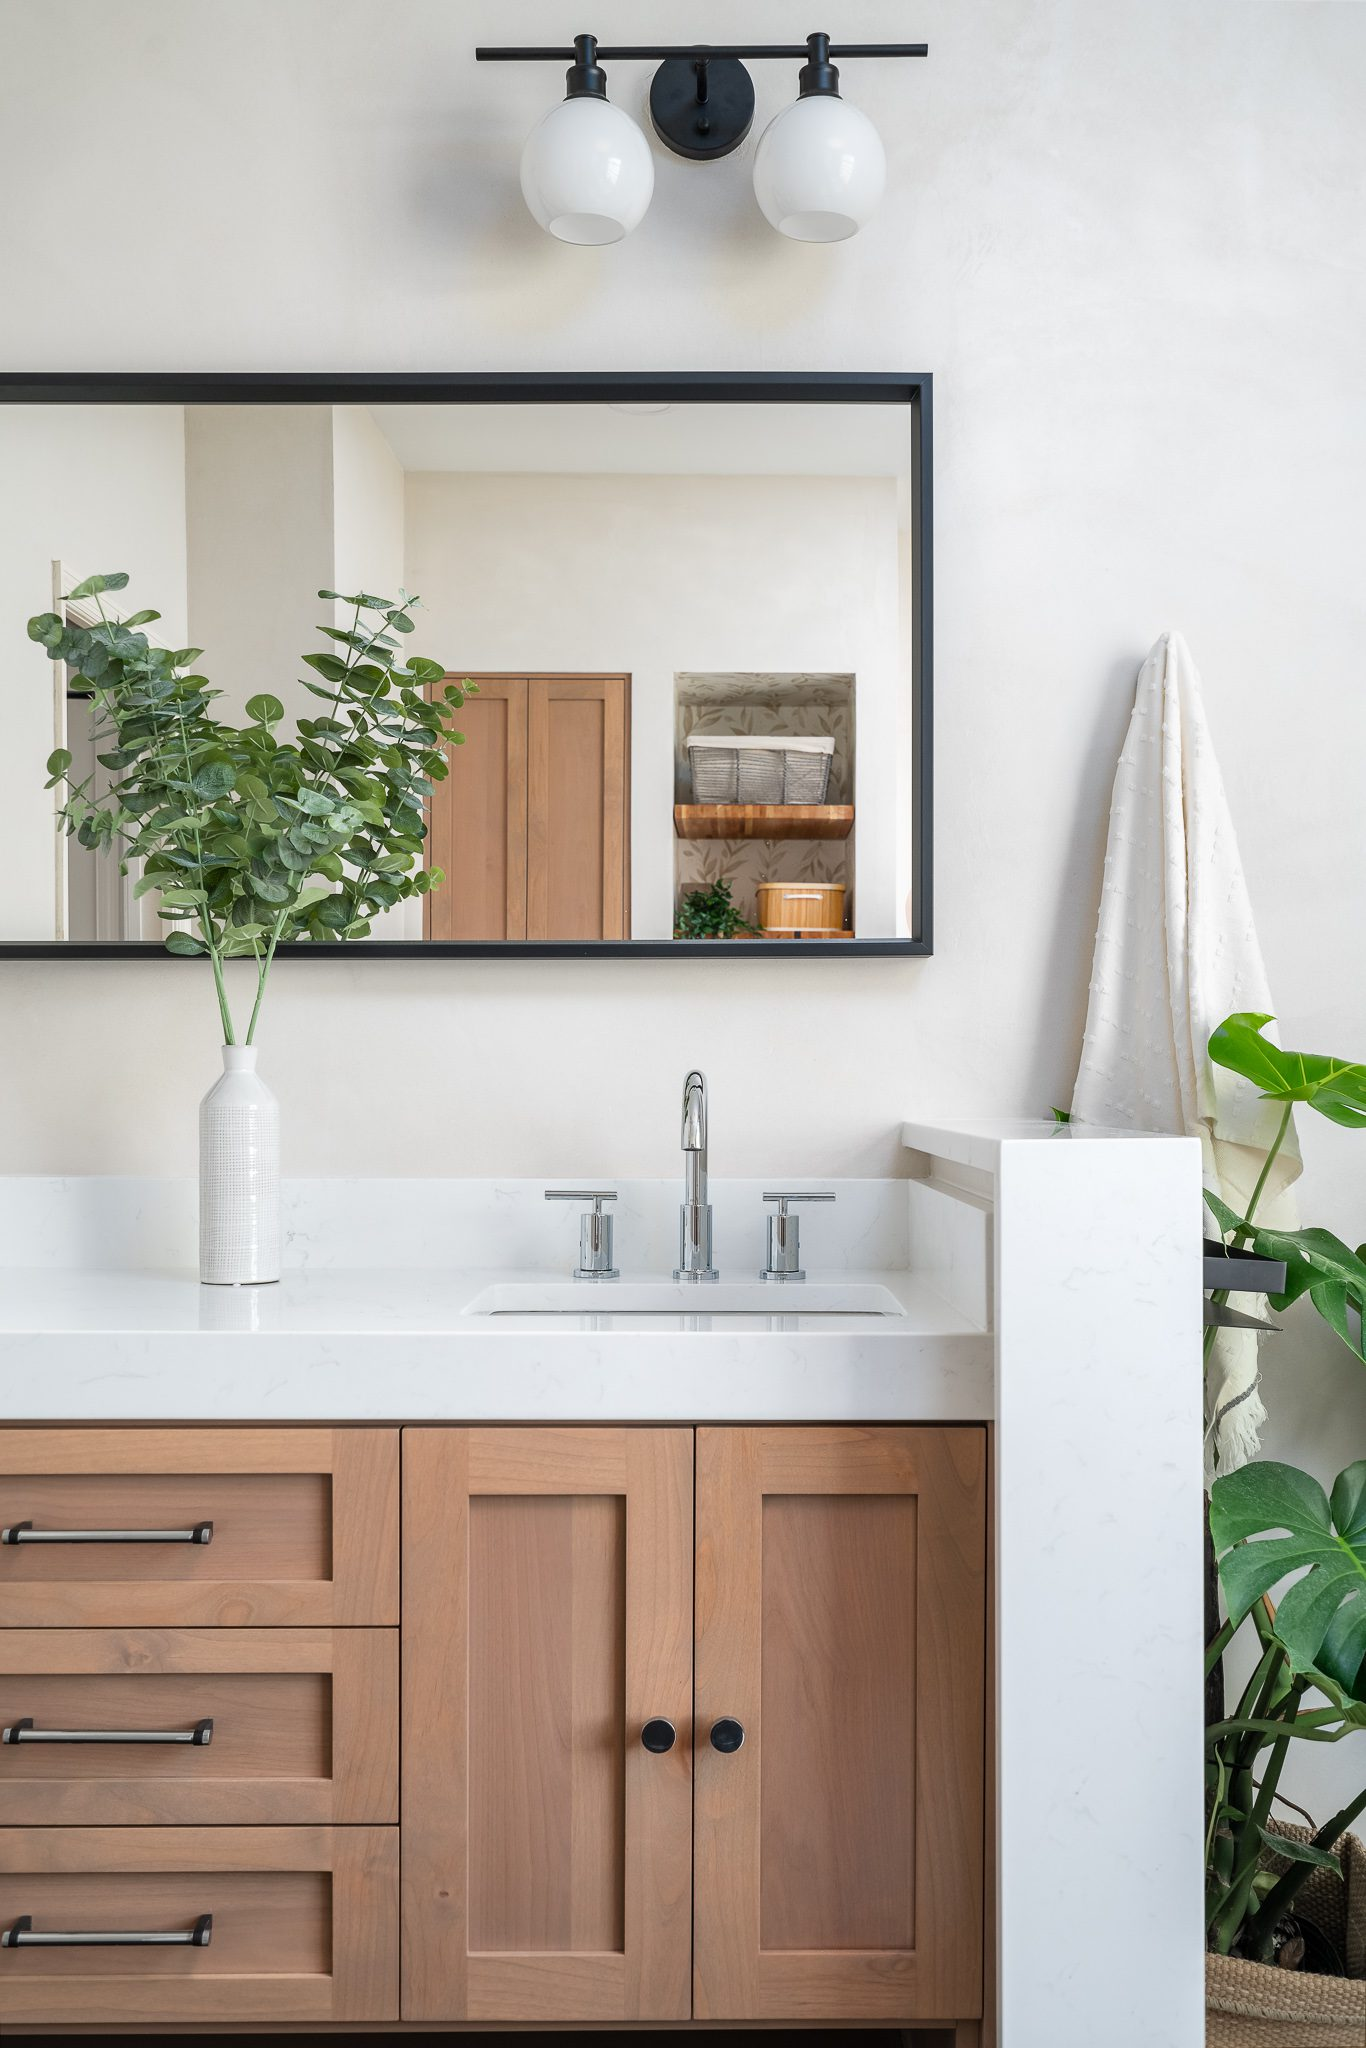 Building a Dream Bathroom: What You Should Know Before Starting Your Remodel